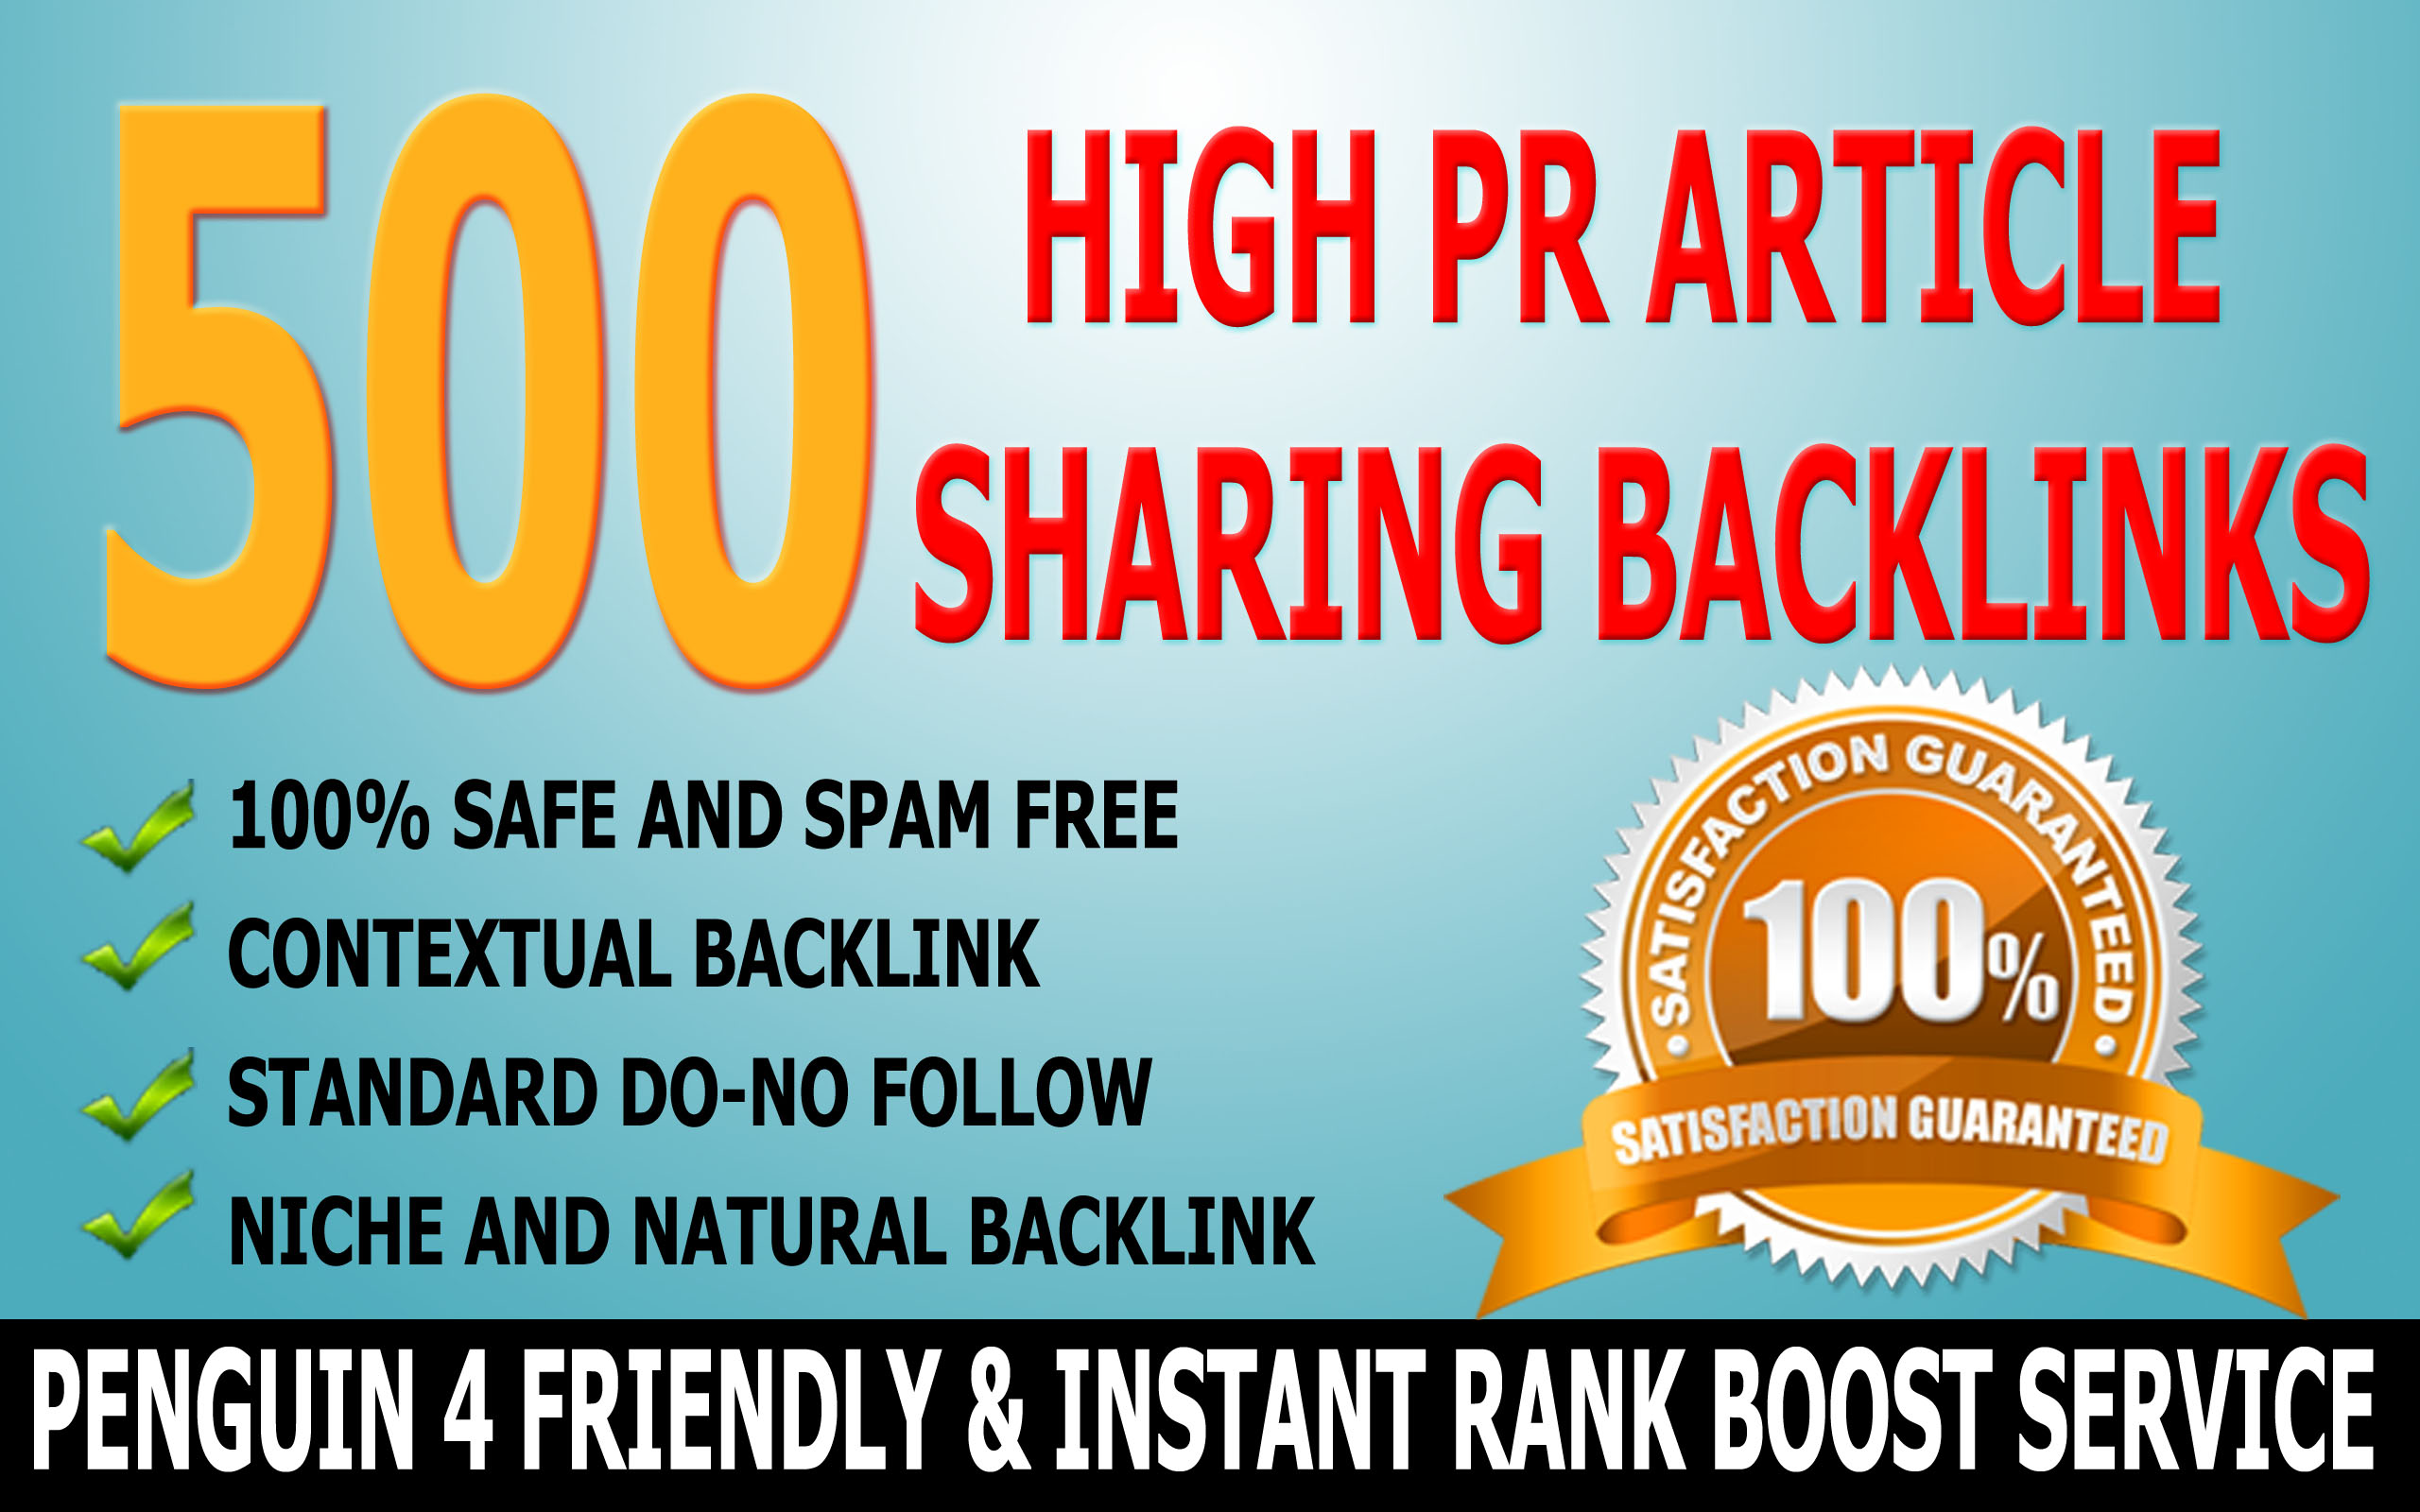 SkyRocket Your Rank with 500 High PR Article Sharing Backlinks